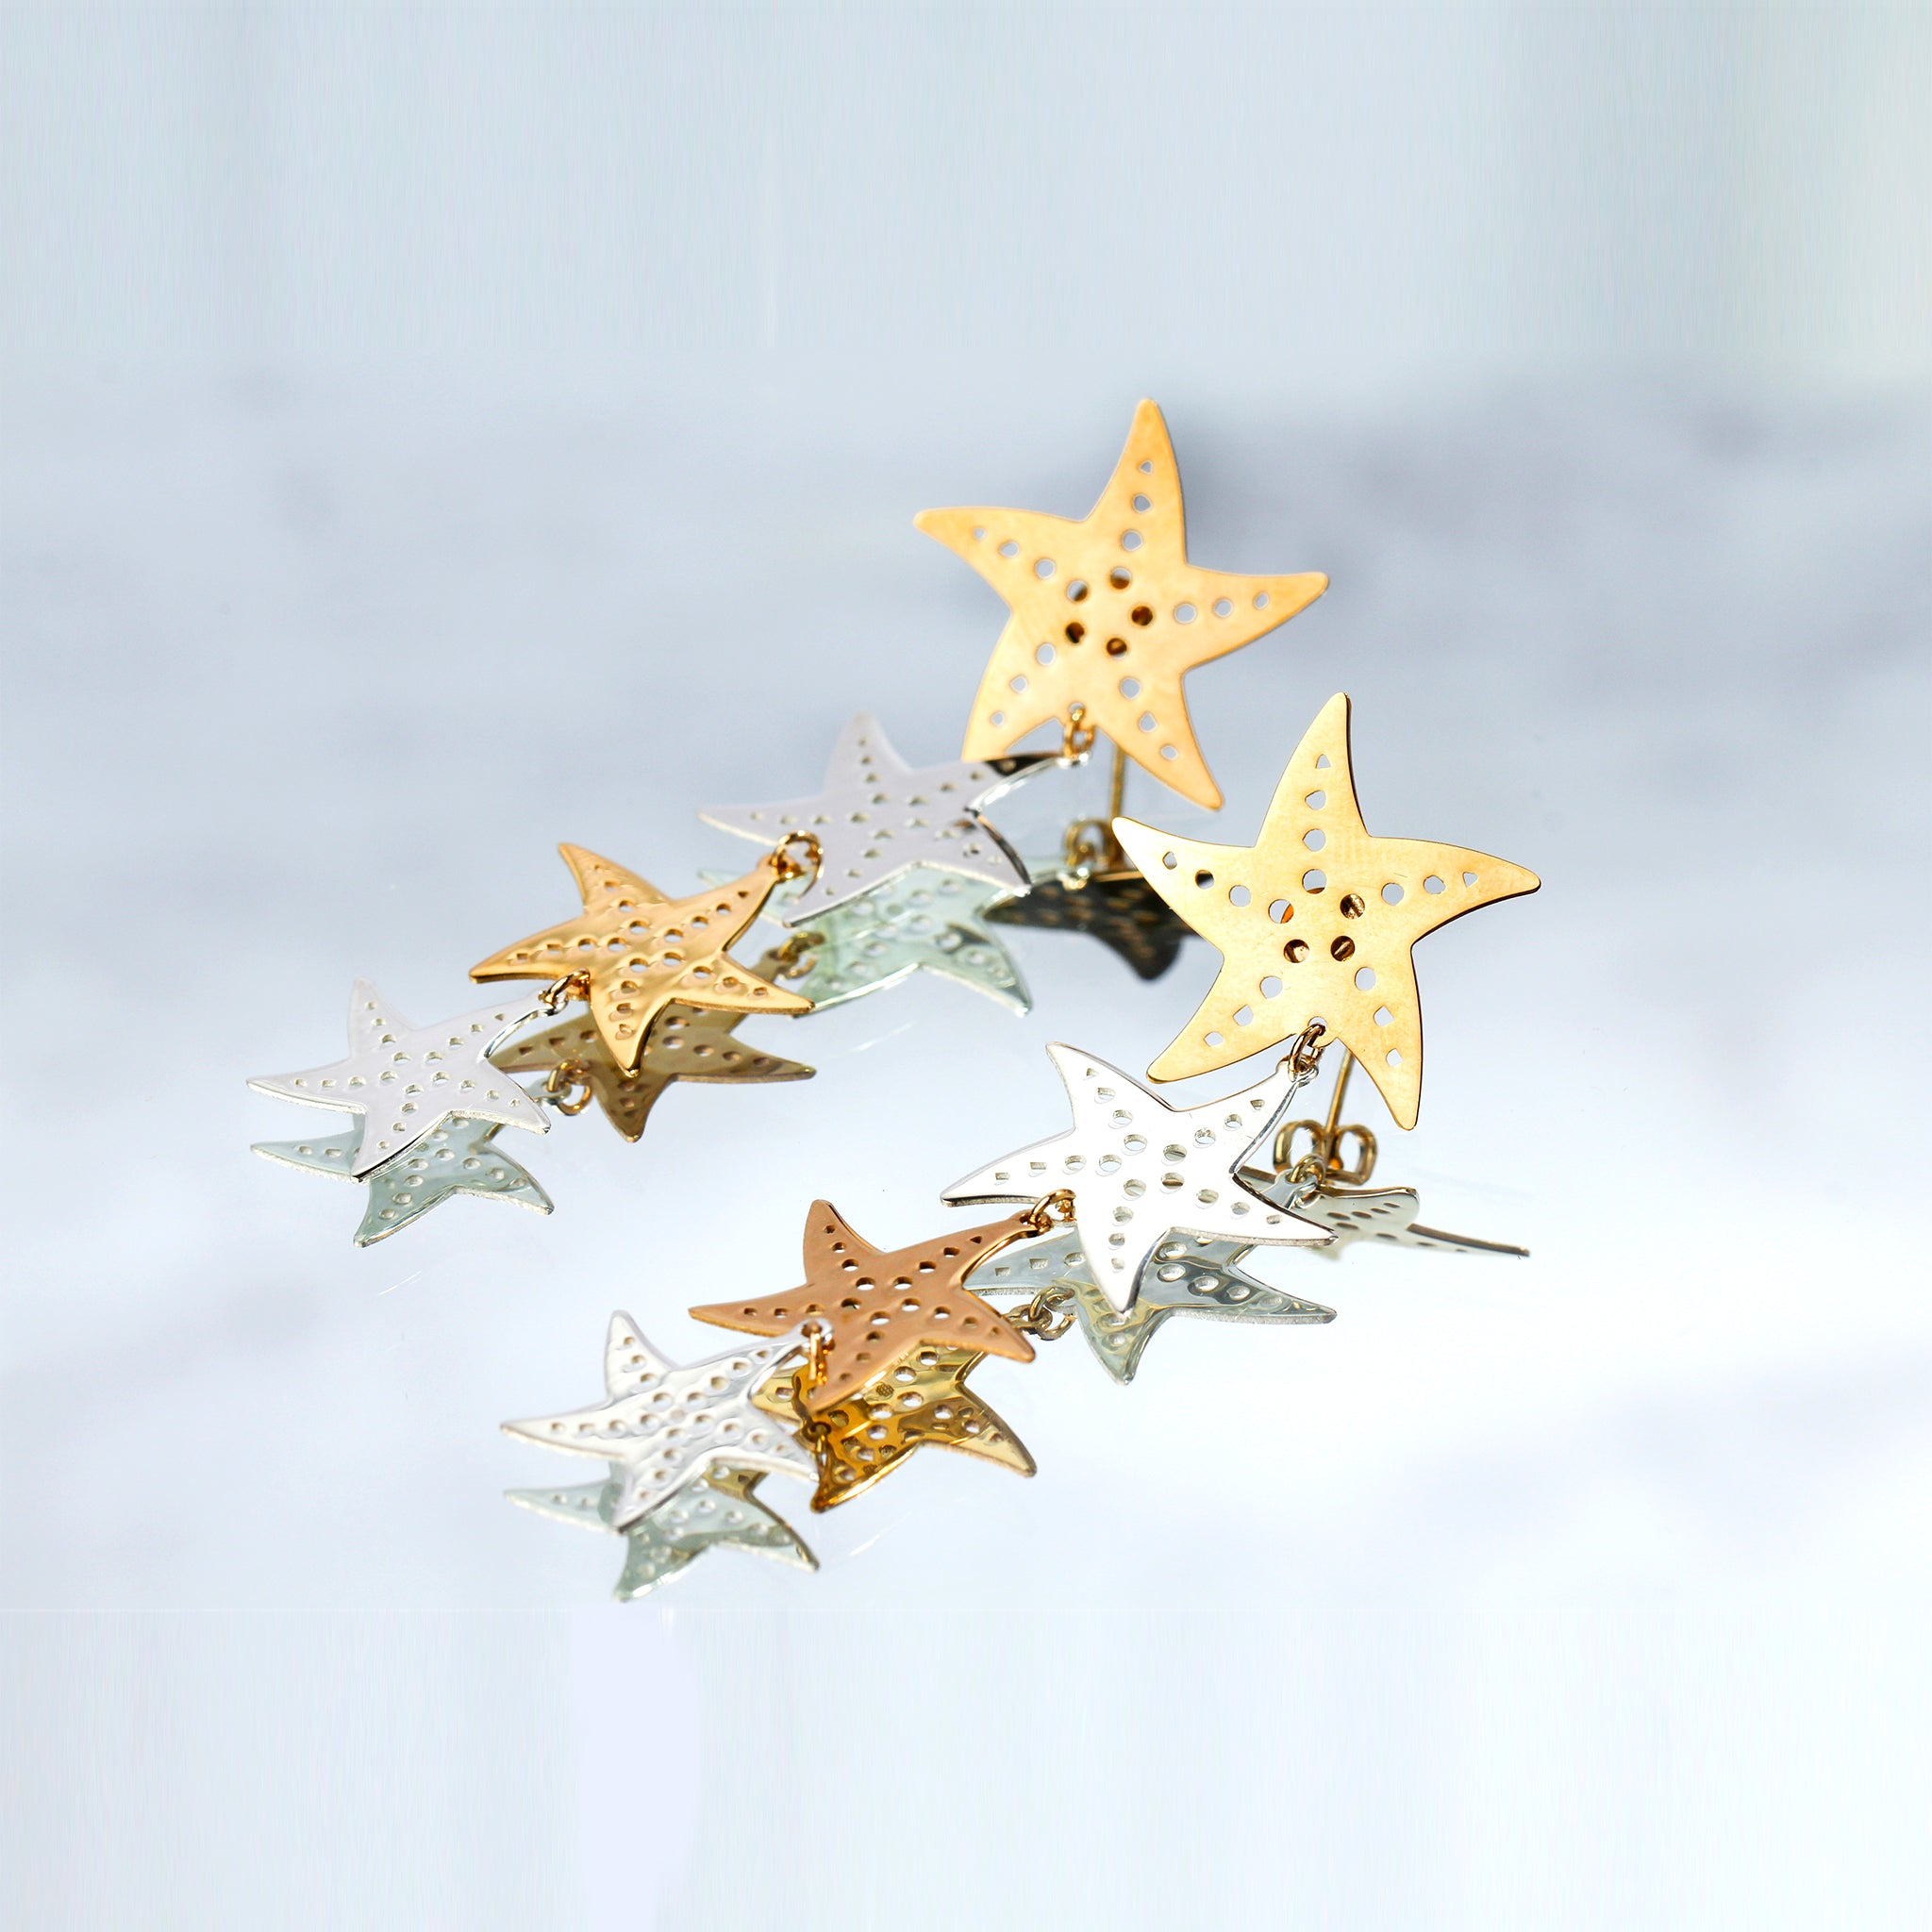 Millié Jewelry - Millié Jewelry - Starfish Statement Earrings - Aretes - Diseño Mexicano - Hecho en México